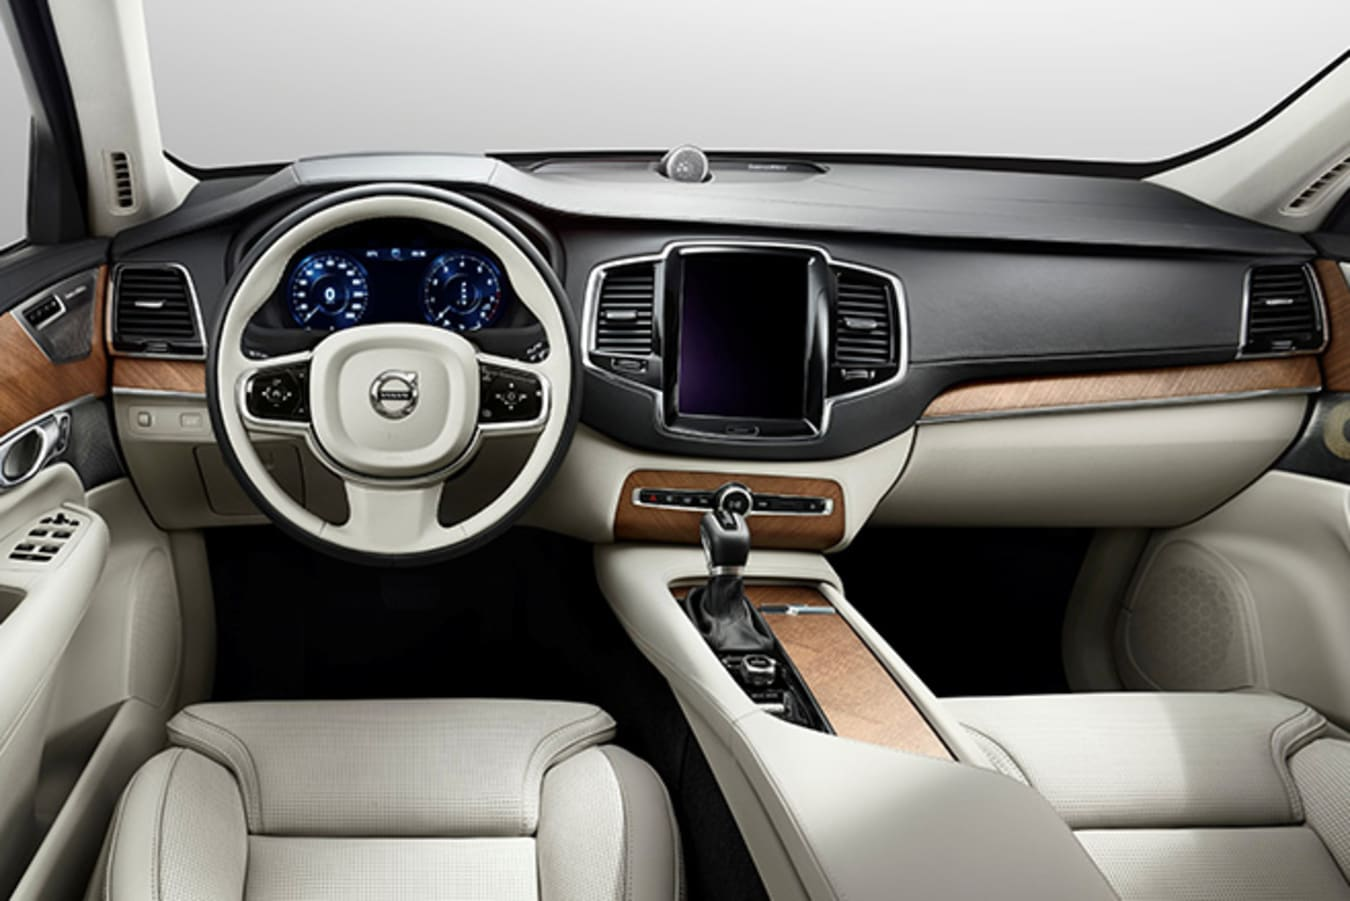 Volvo XC-90 dashboard touchscreen and interior